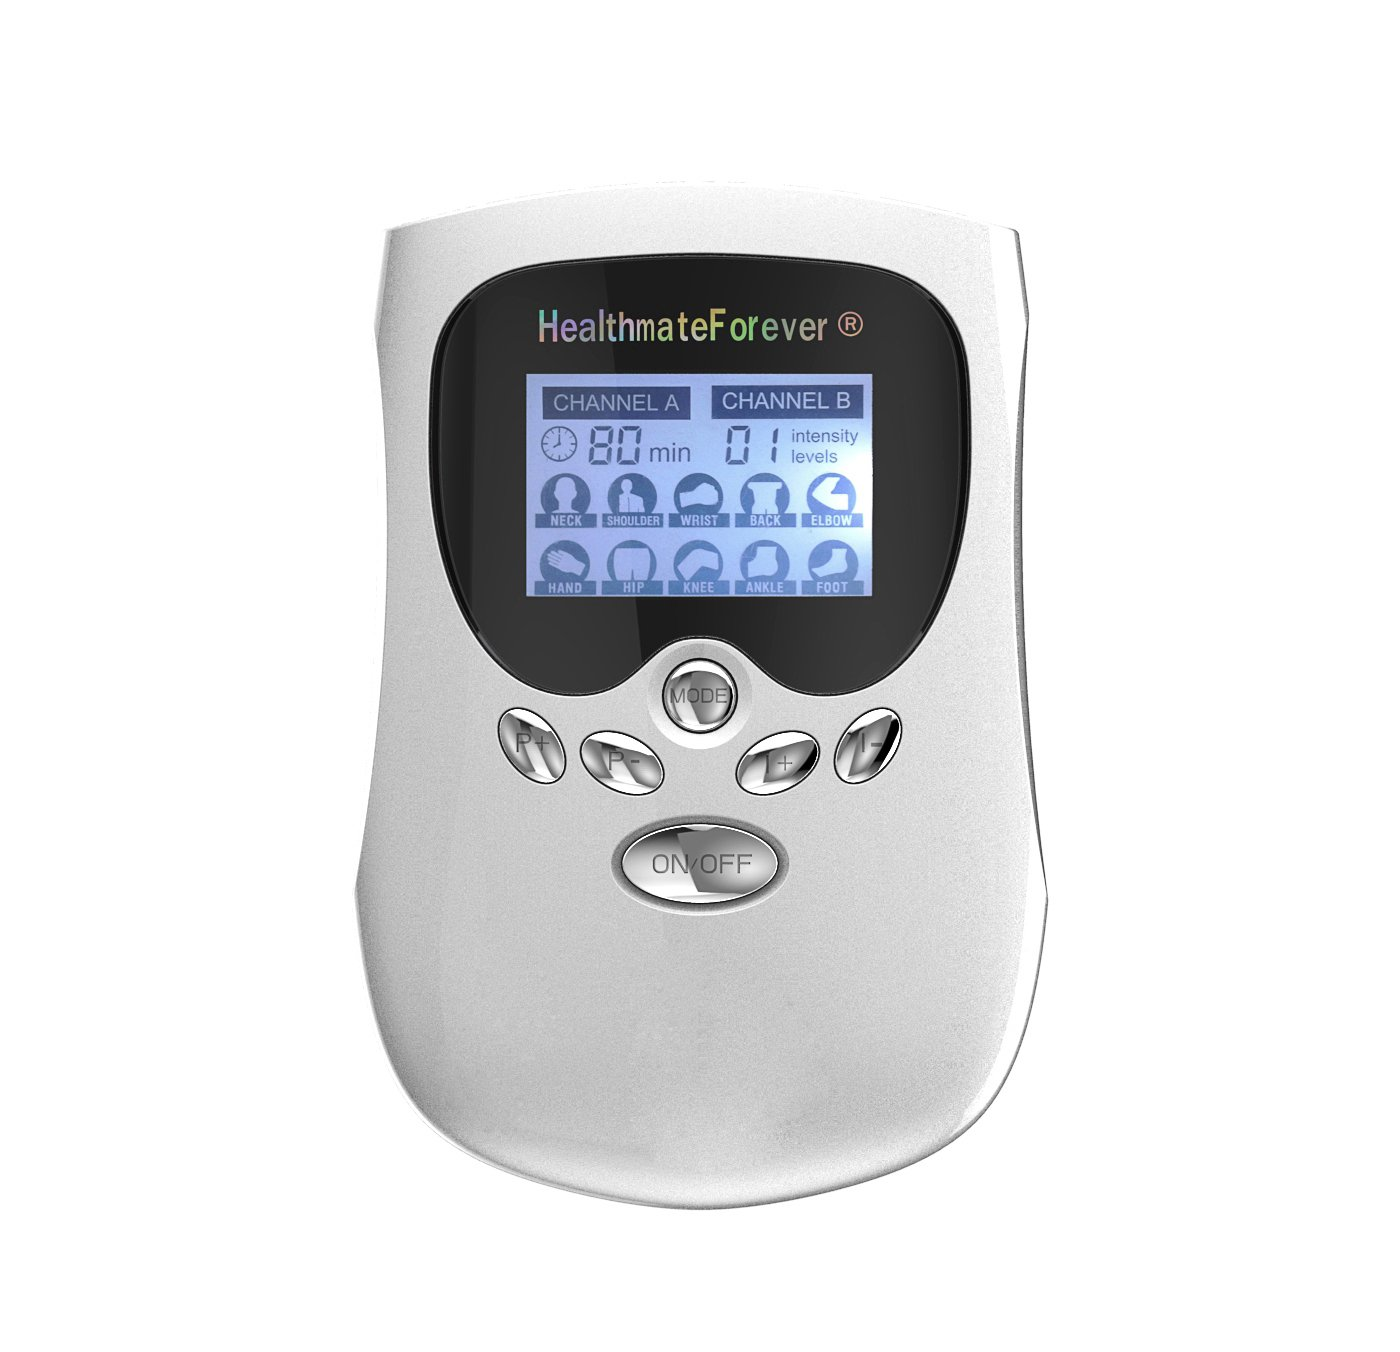 PM10AB HealthmateForever TENS Unit Electrical Muscle Stimulator White + 4in1 Leads Wire and 1 Pair o